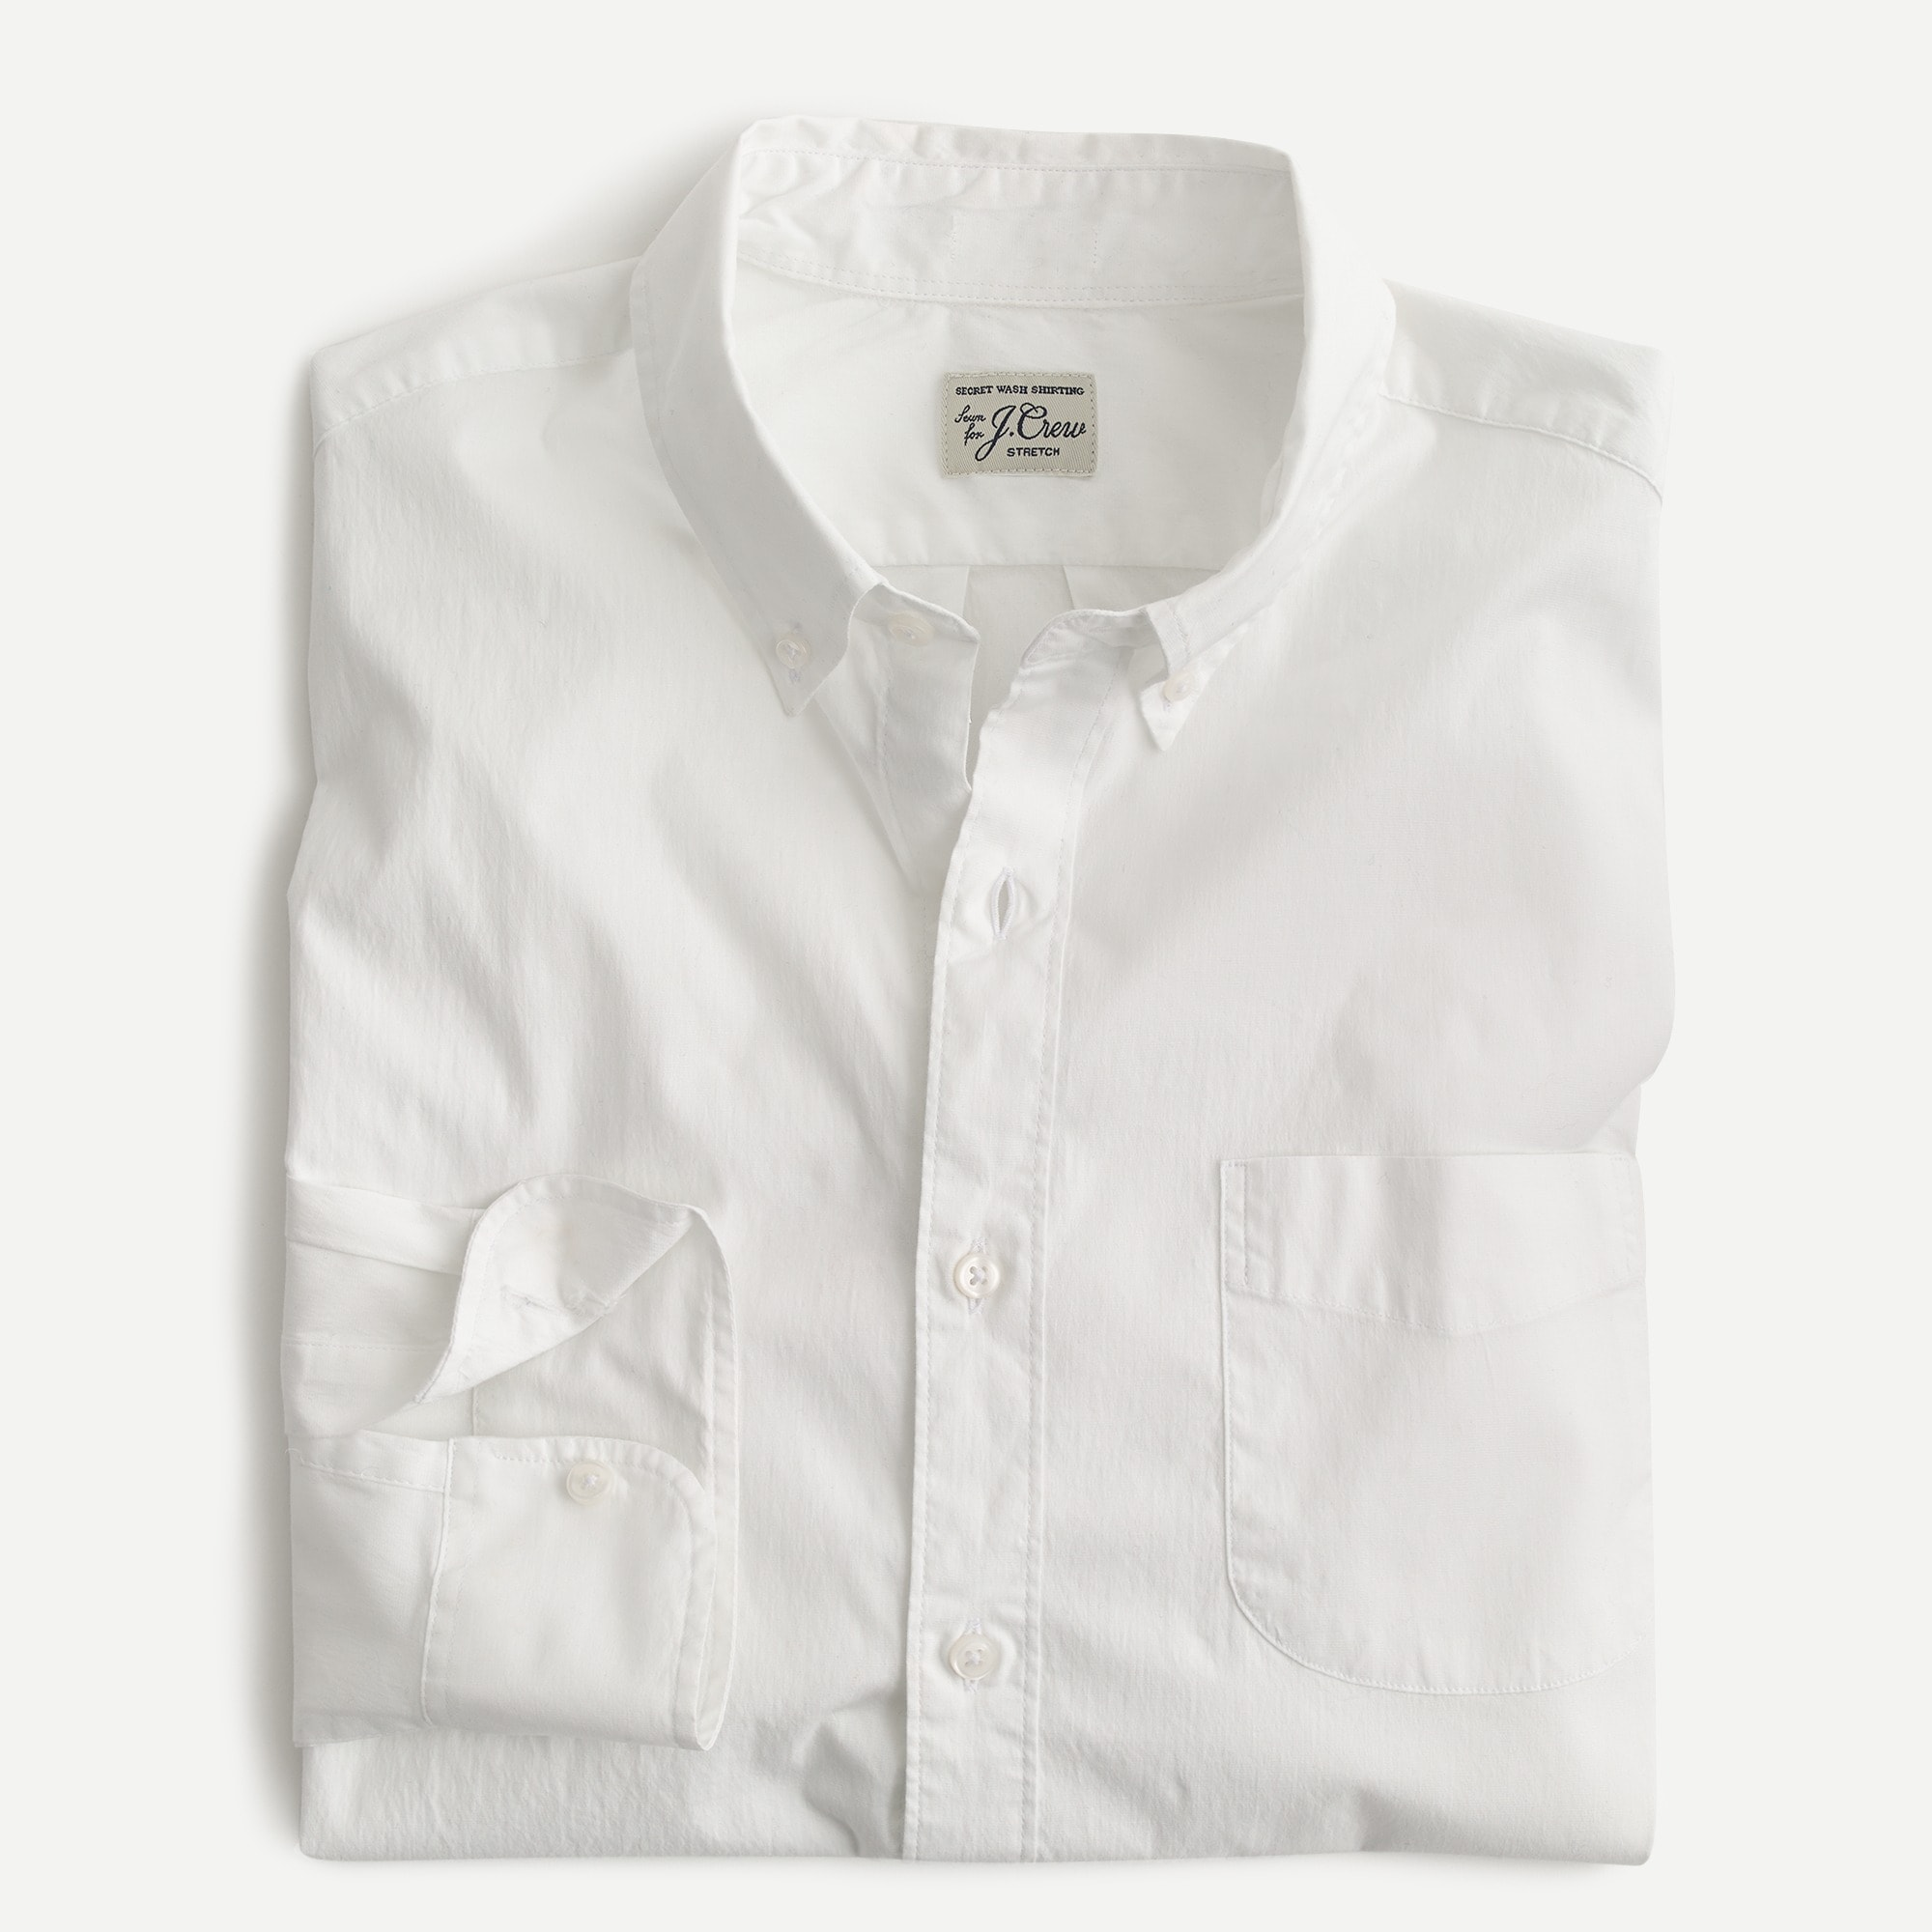 mens Stretch Secret Wash shirt in white poplin